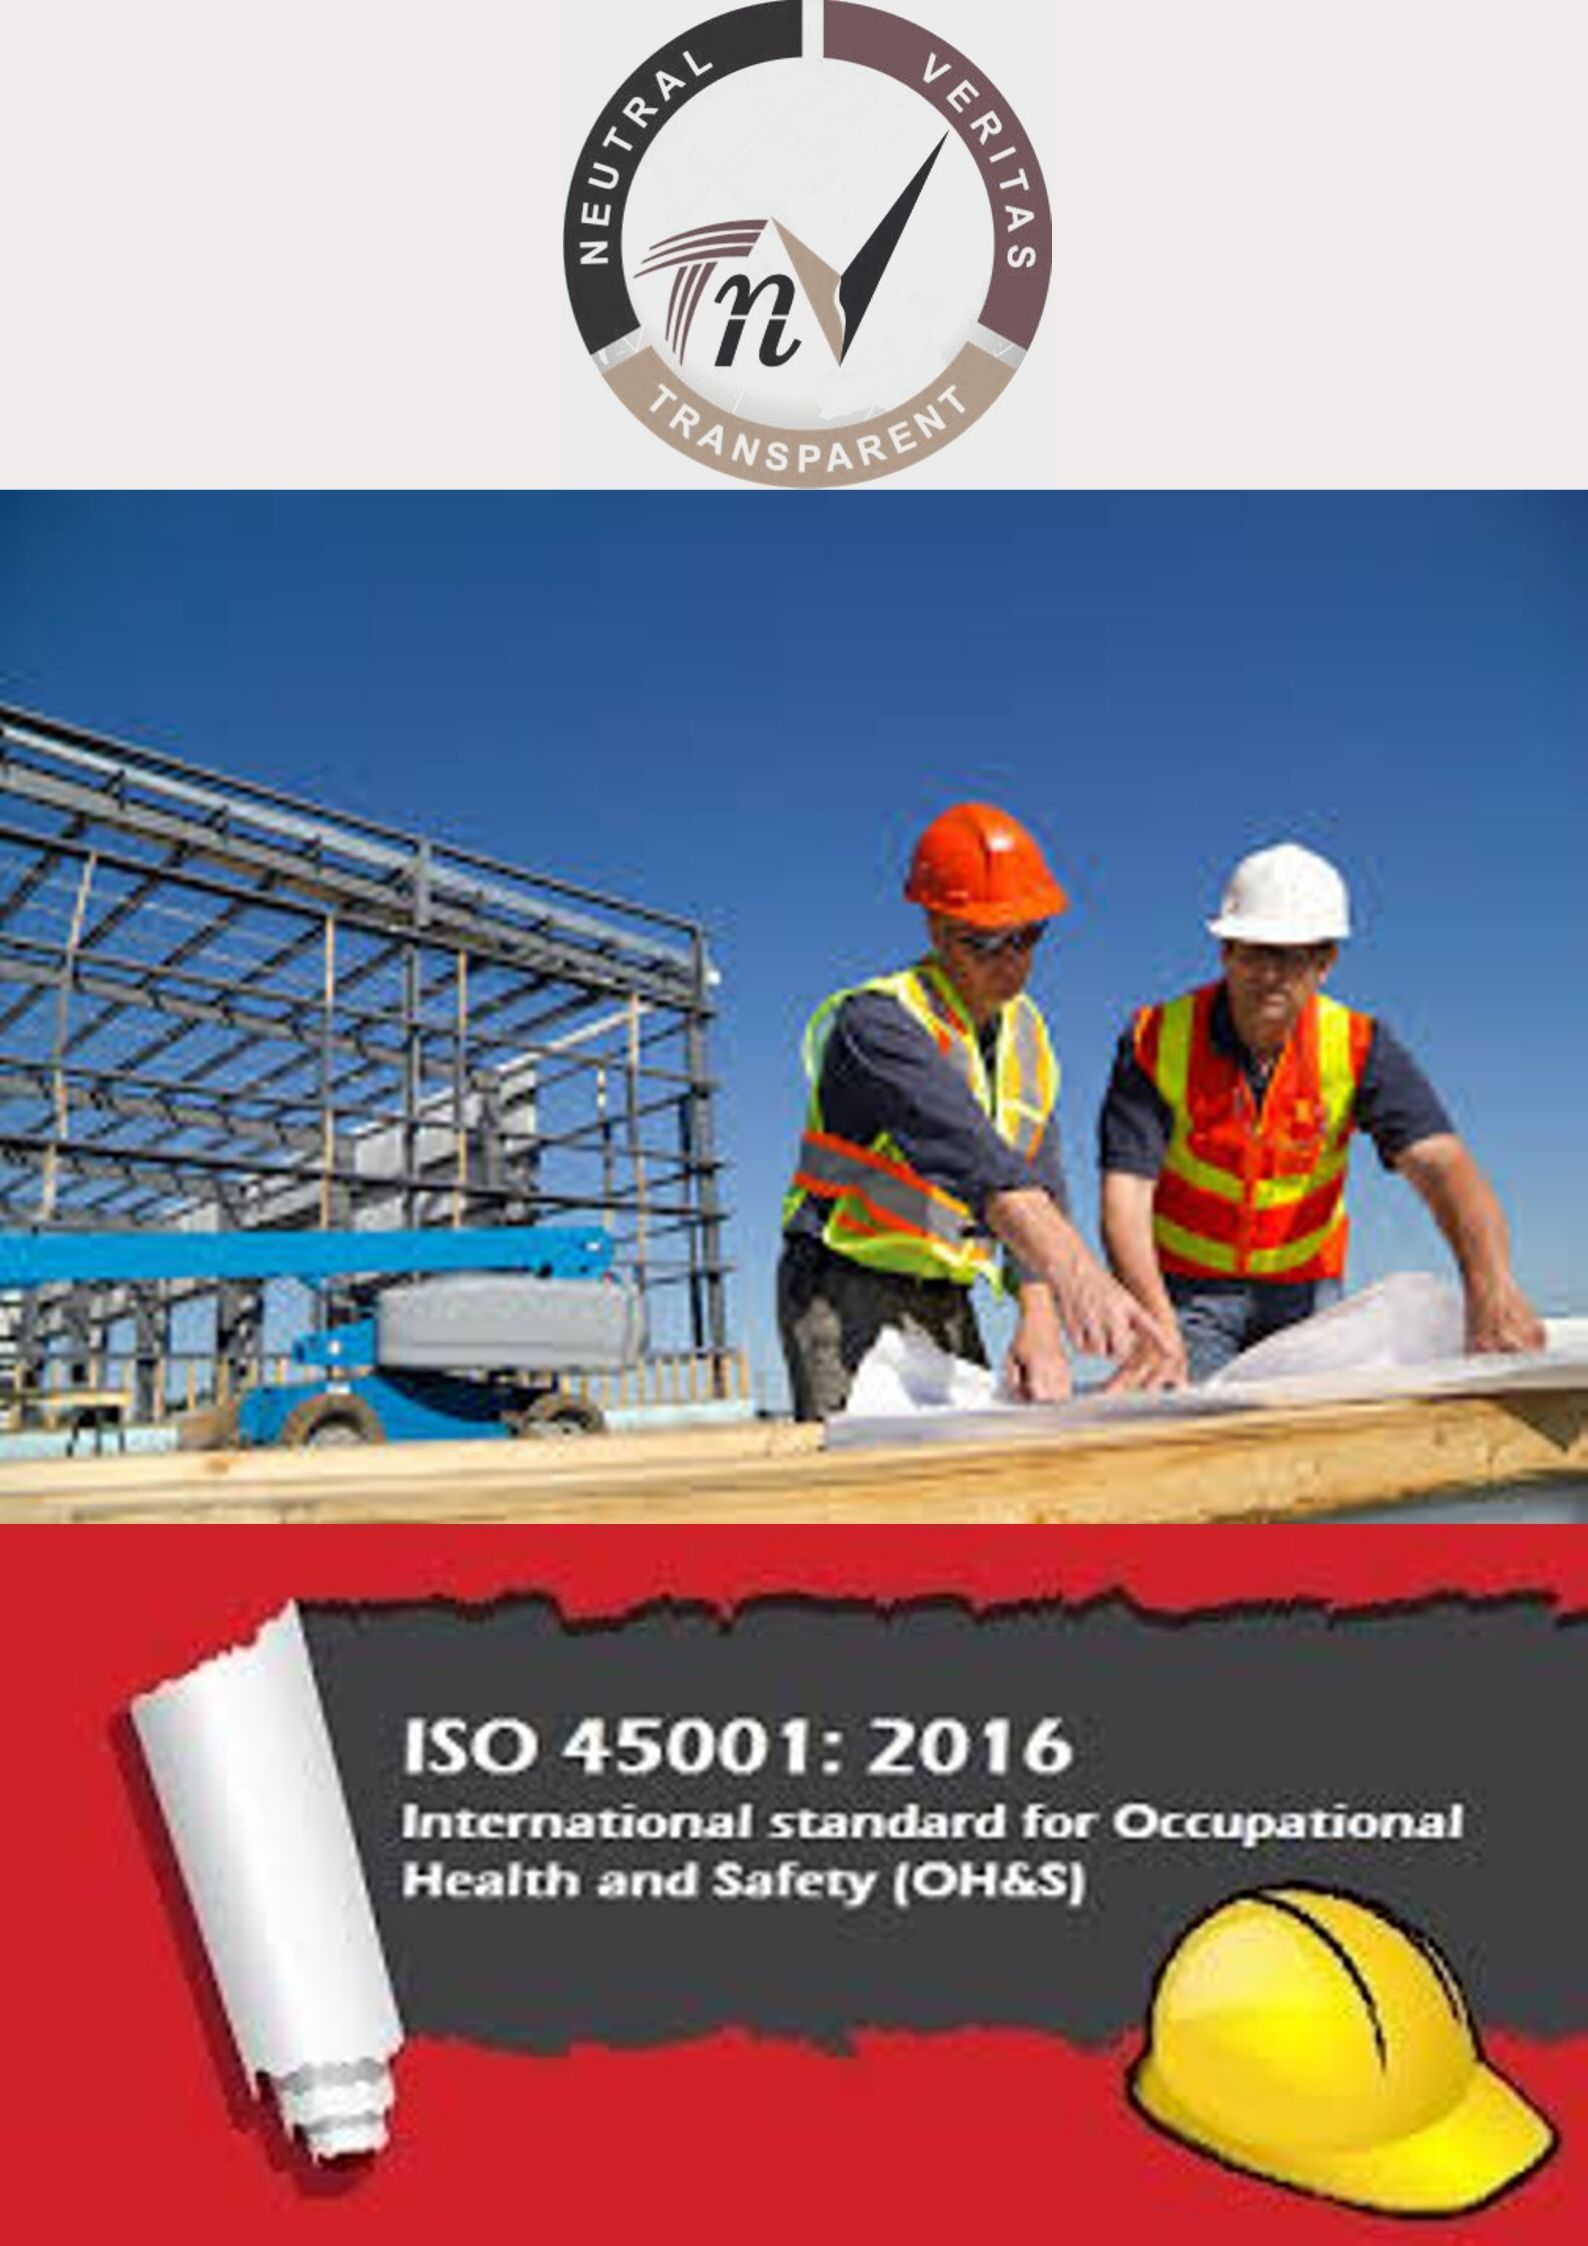 The Draft International Standards (DIS) of ISO 450012016